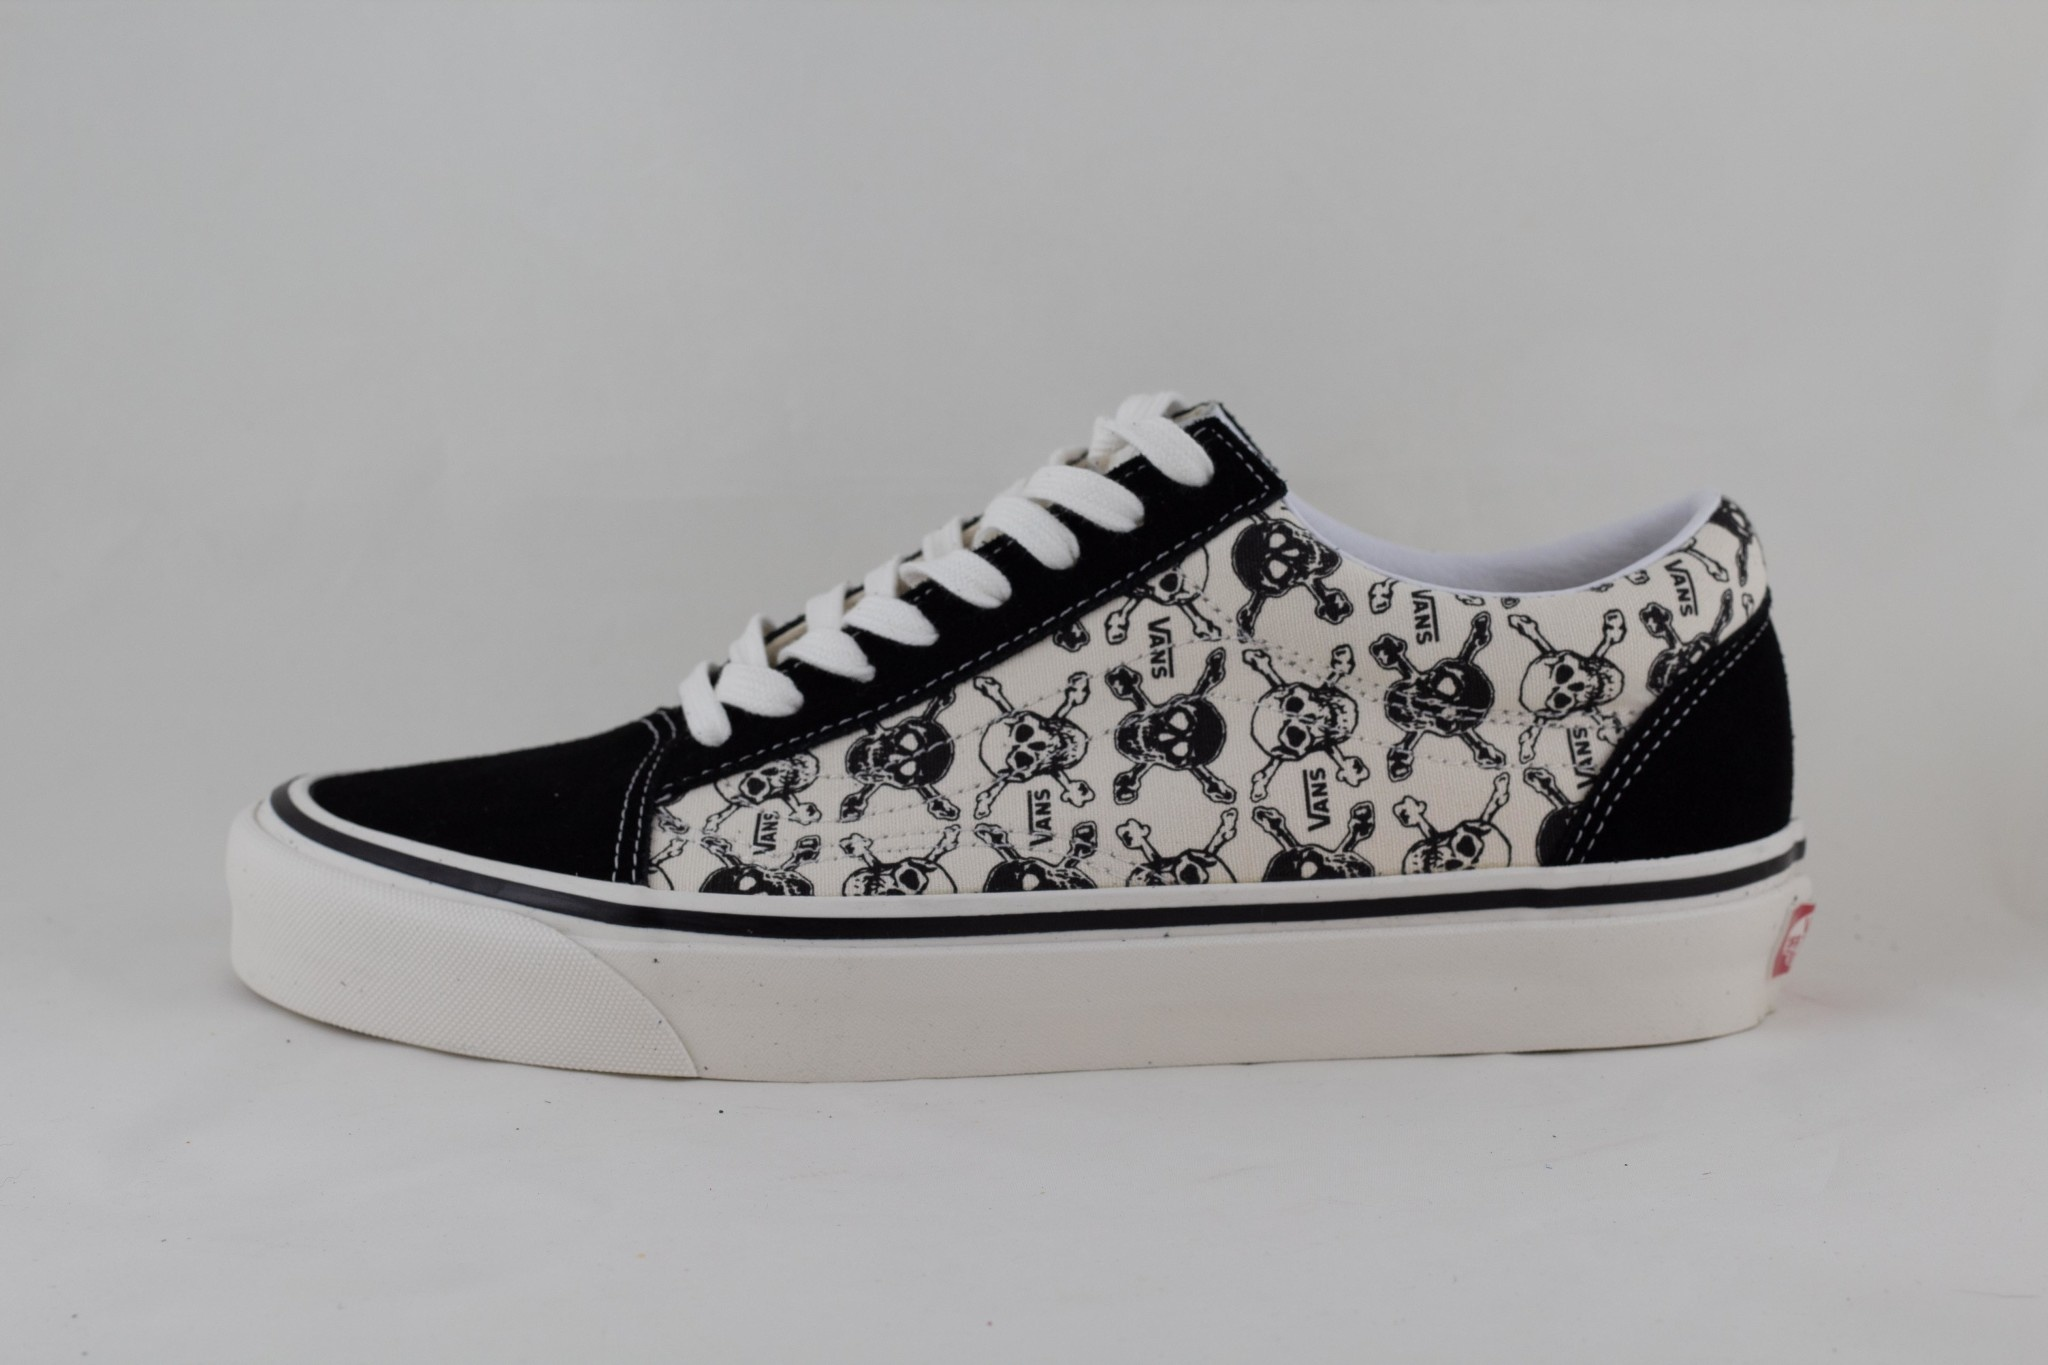 VANS OLD SKOOL  36 DX (ANAHMFCTY) Og Skull/ Og Black/ Og White